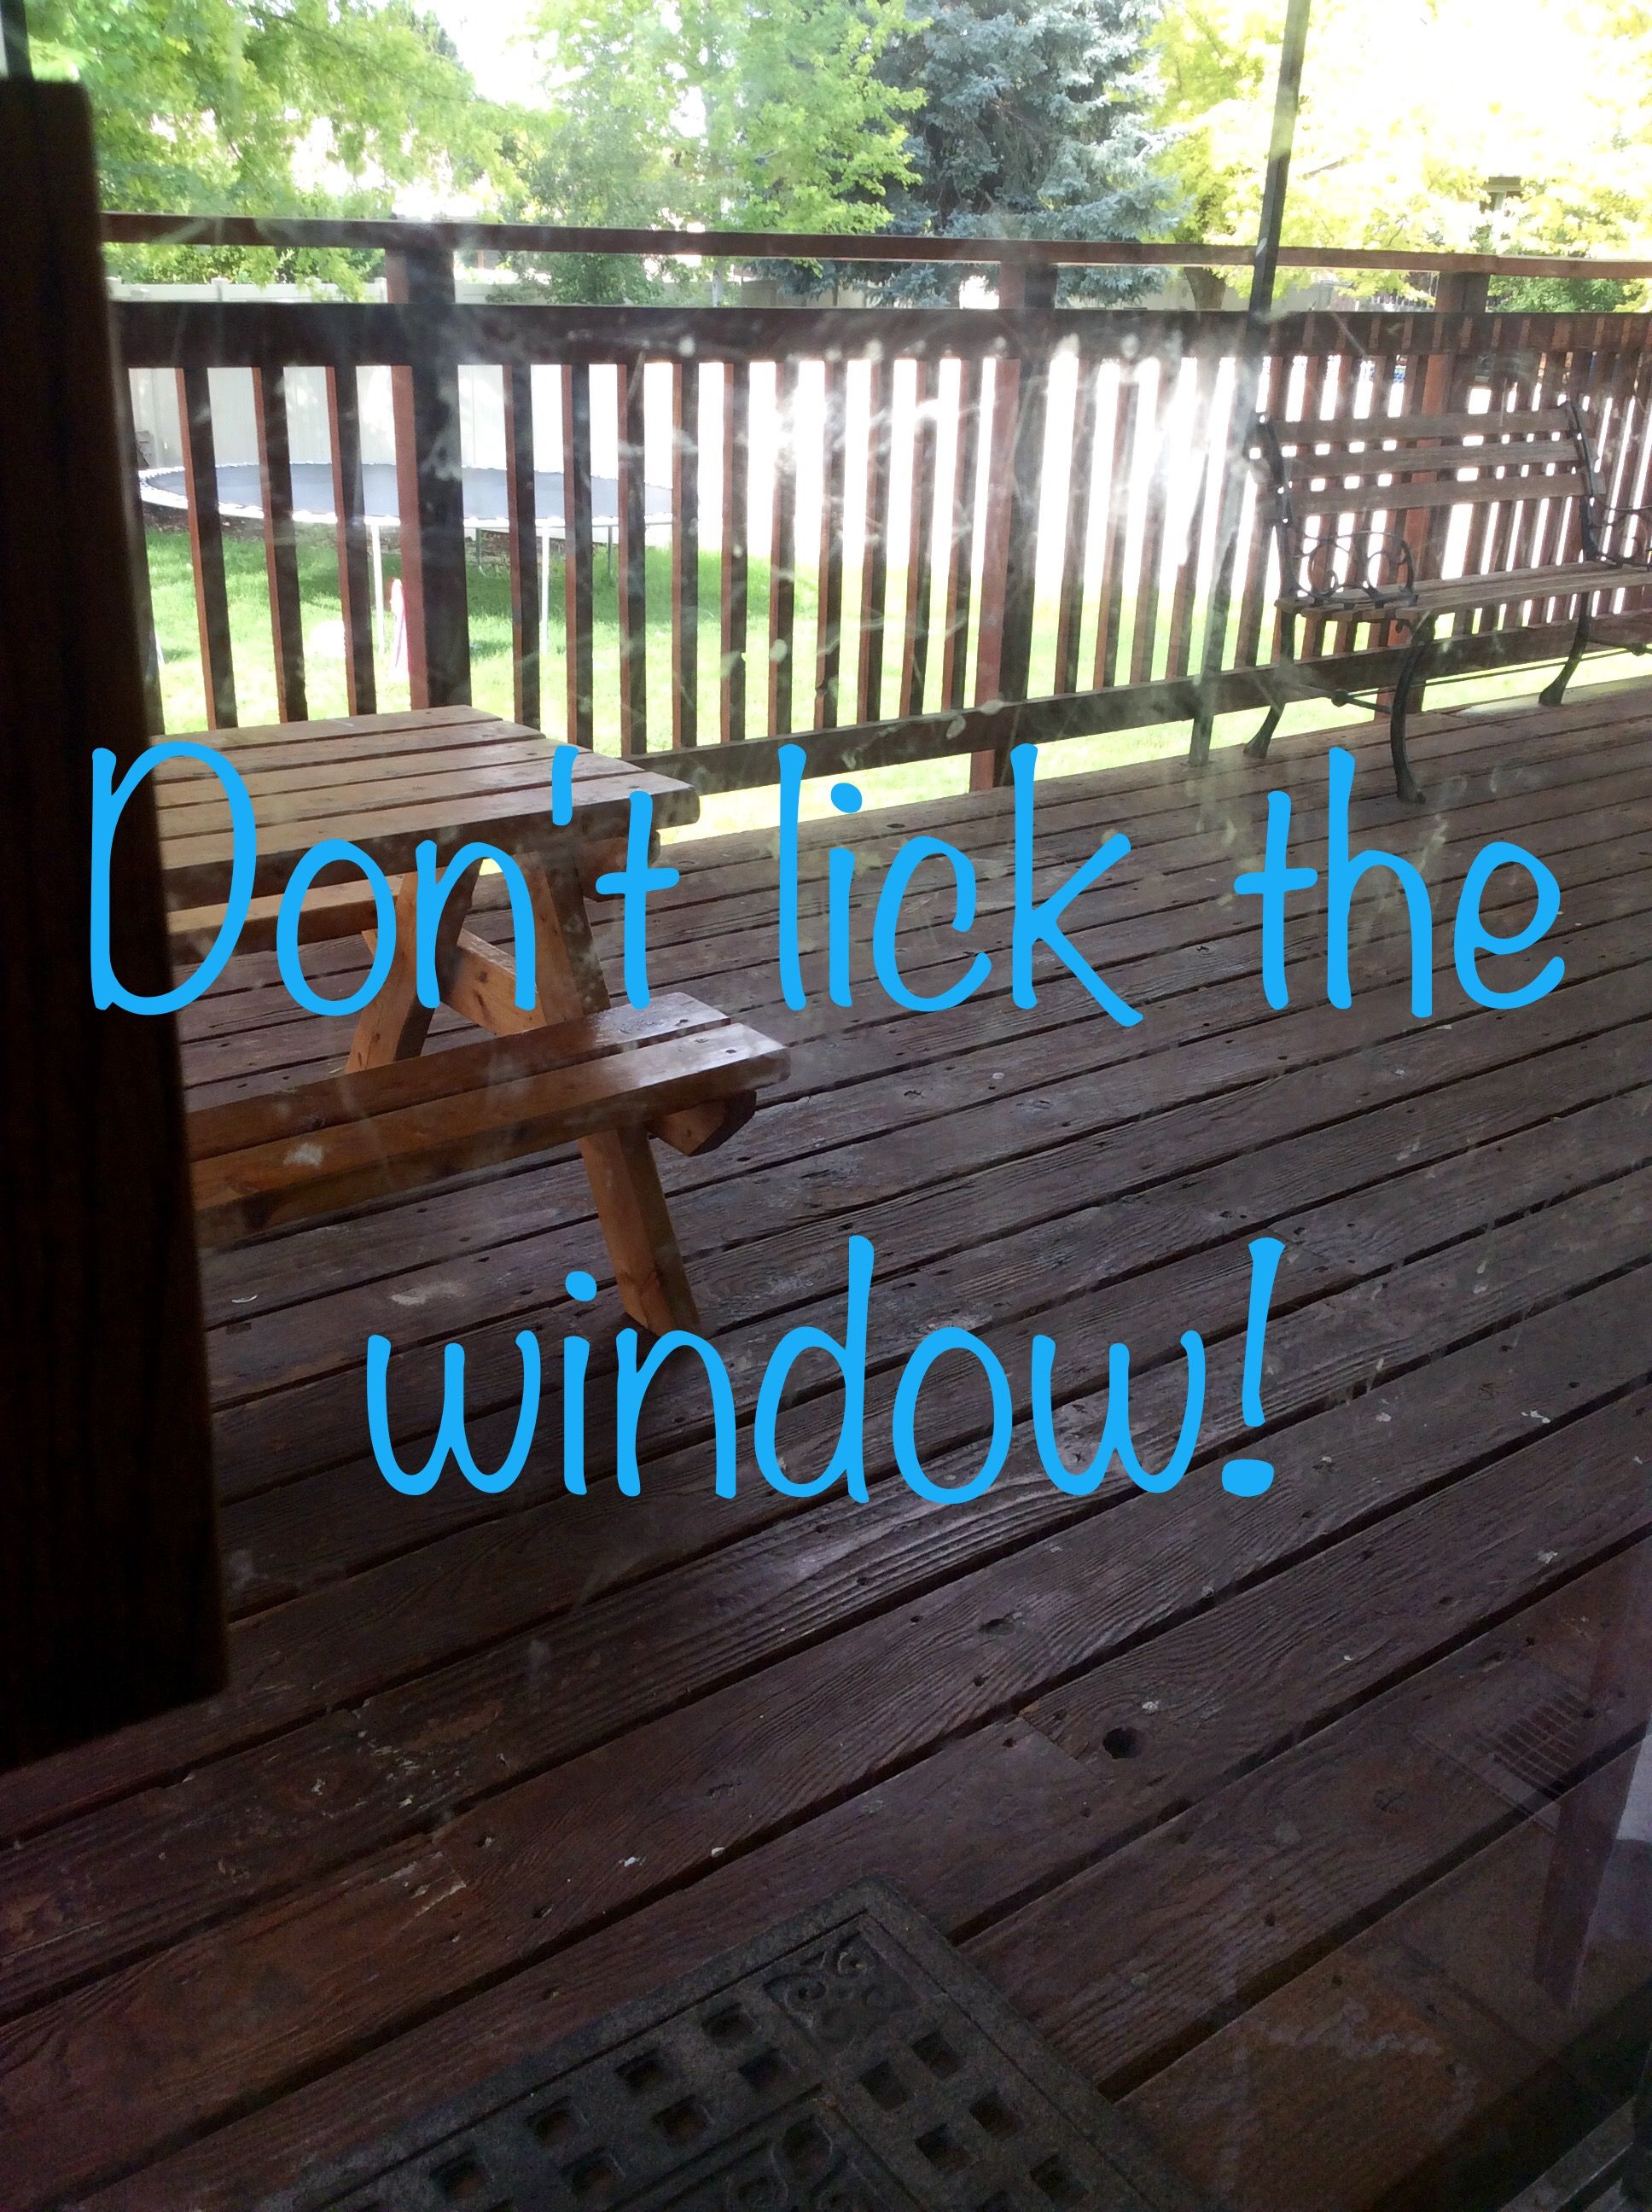 Old window ideas for outside  donut lick the windows